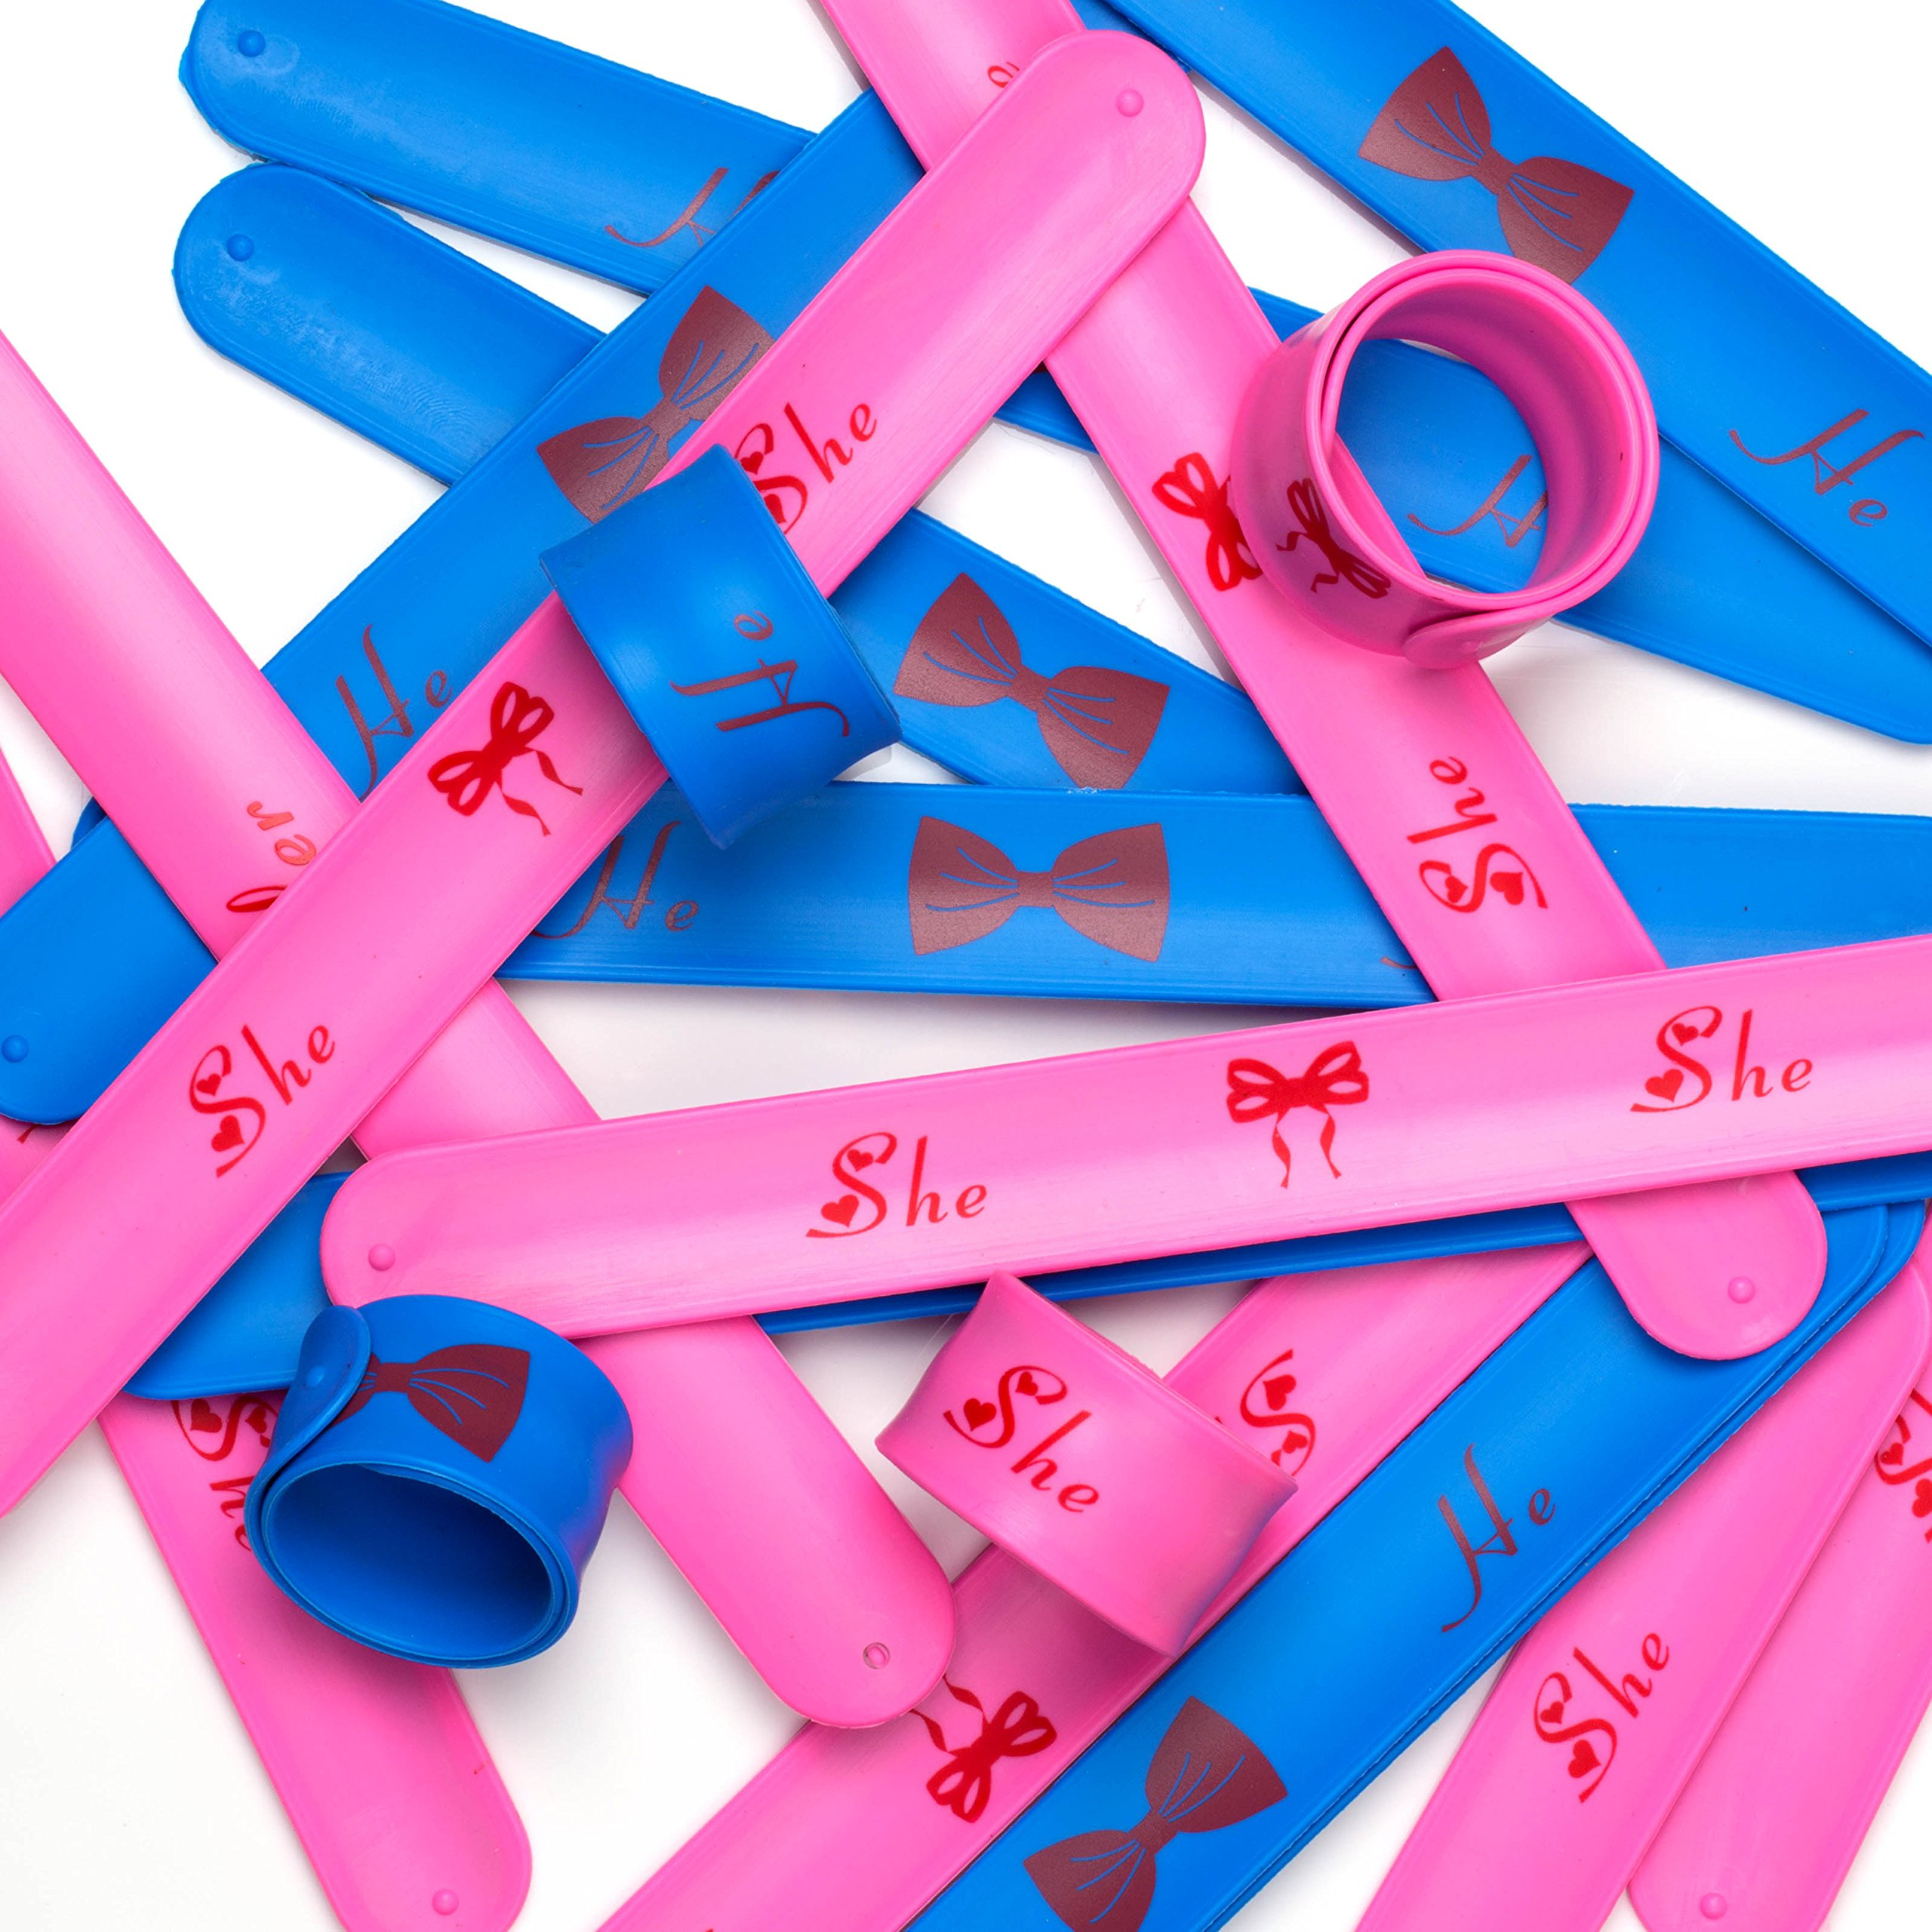 PROLOSO Gender Reveal Party Set - Slap Bracelet Wristbands (Pink & Blue) for Baby Shower Supply Props - 20PCS